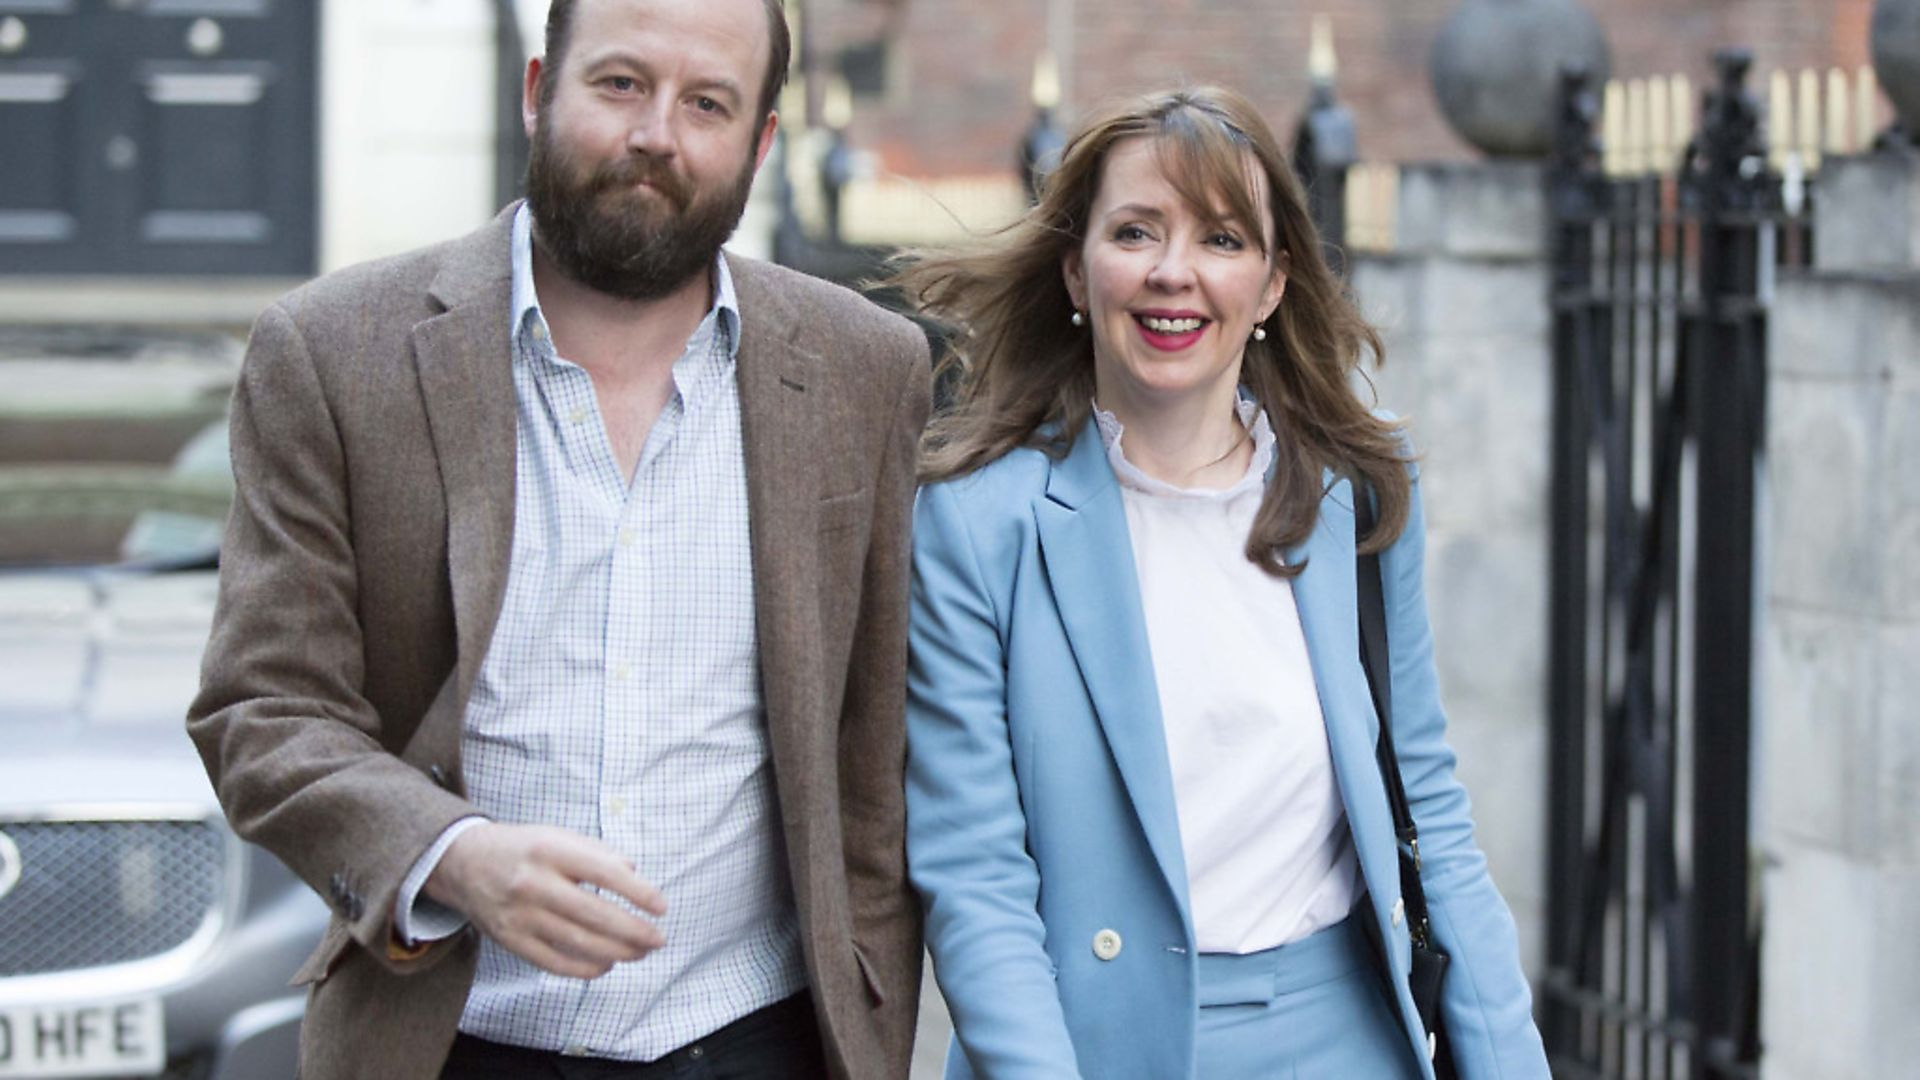 Theresa May's former chief of staff Nick Timothy and joint-chief of staff Fiona Hill after the 2017 general election. Photograph: Rick Findler/PA. - Credit: PA Archive/PA Images